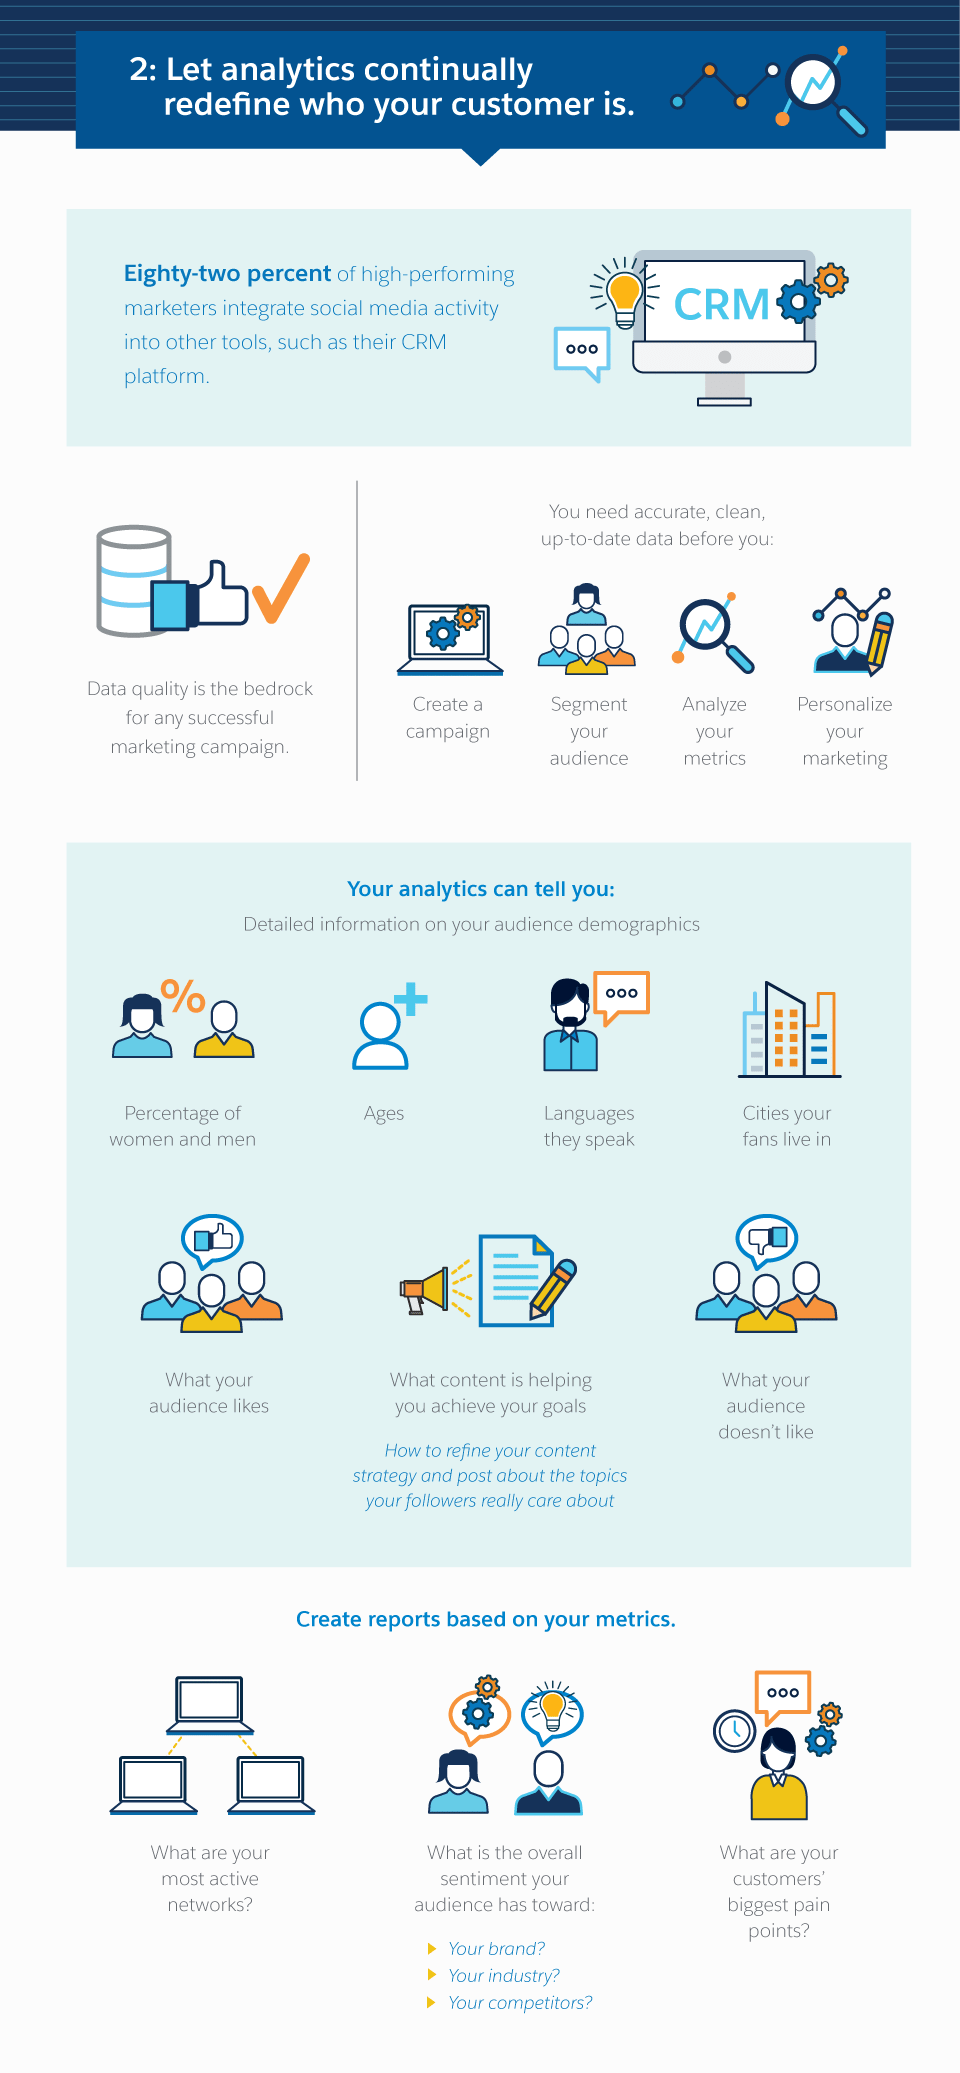 2-the-latest-social-media-marketing-best-practices-you-need-to-know-infographic